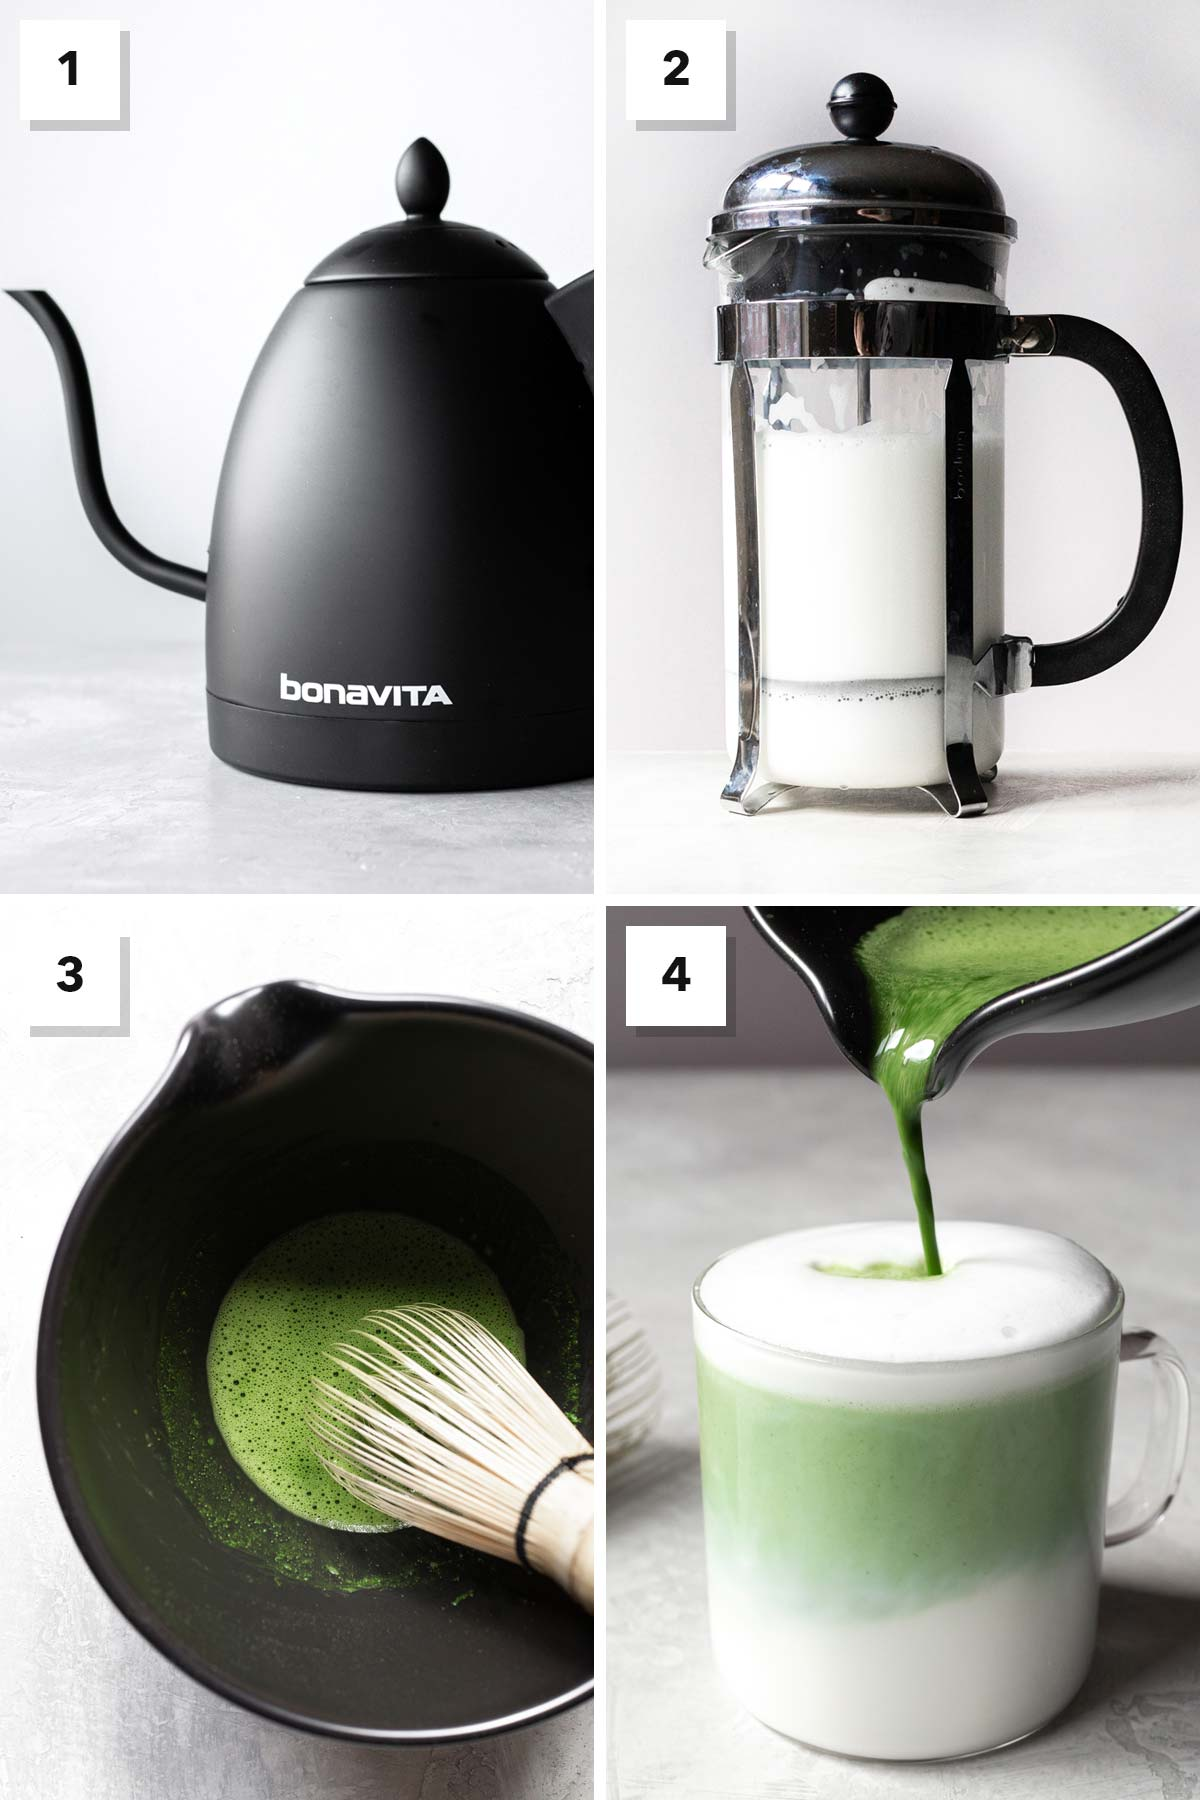 Four image collage showing steps to make a matcha latte.